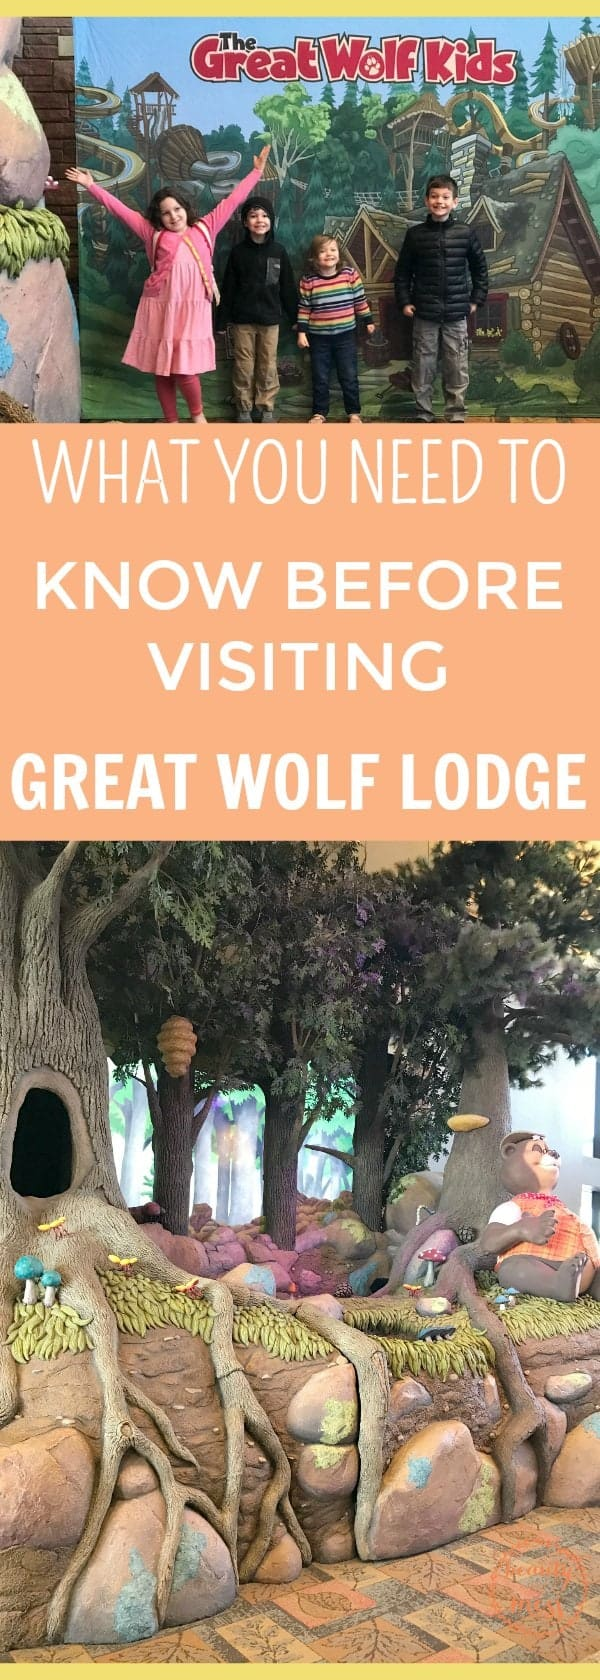 Whether you are wanting a family getaway so you can spend intentional time with your family or a family vacation, consider #greatwolflodge . The #waterpark and fun activities for the kids are included in your stay while there are plenty of add-on attractions that the whole family will enjoy. #familytravel